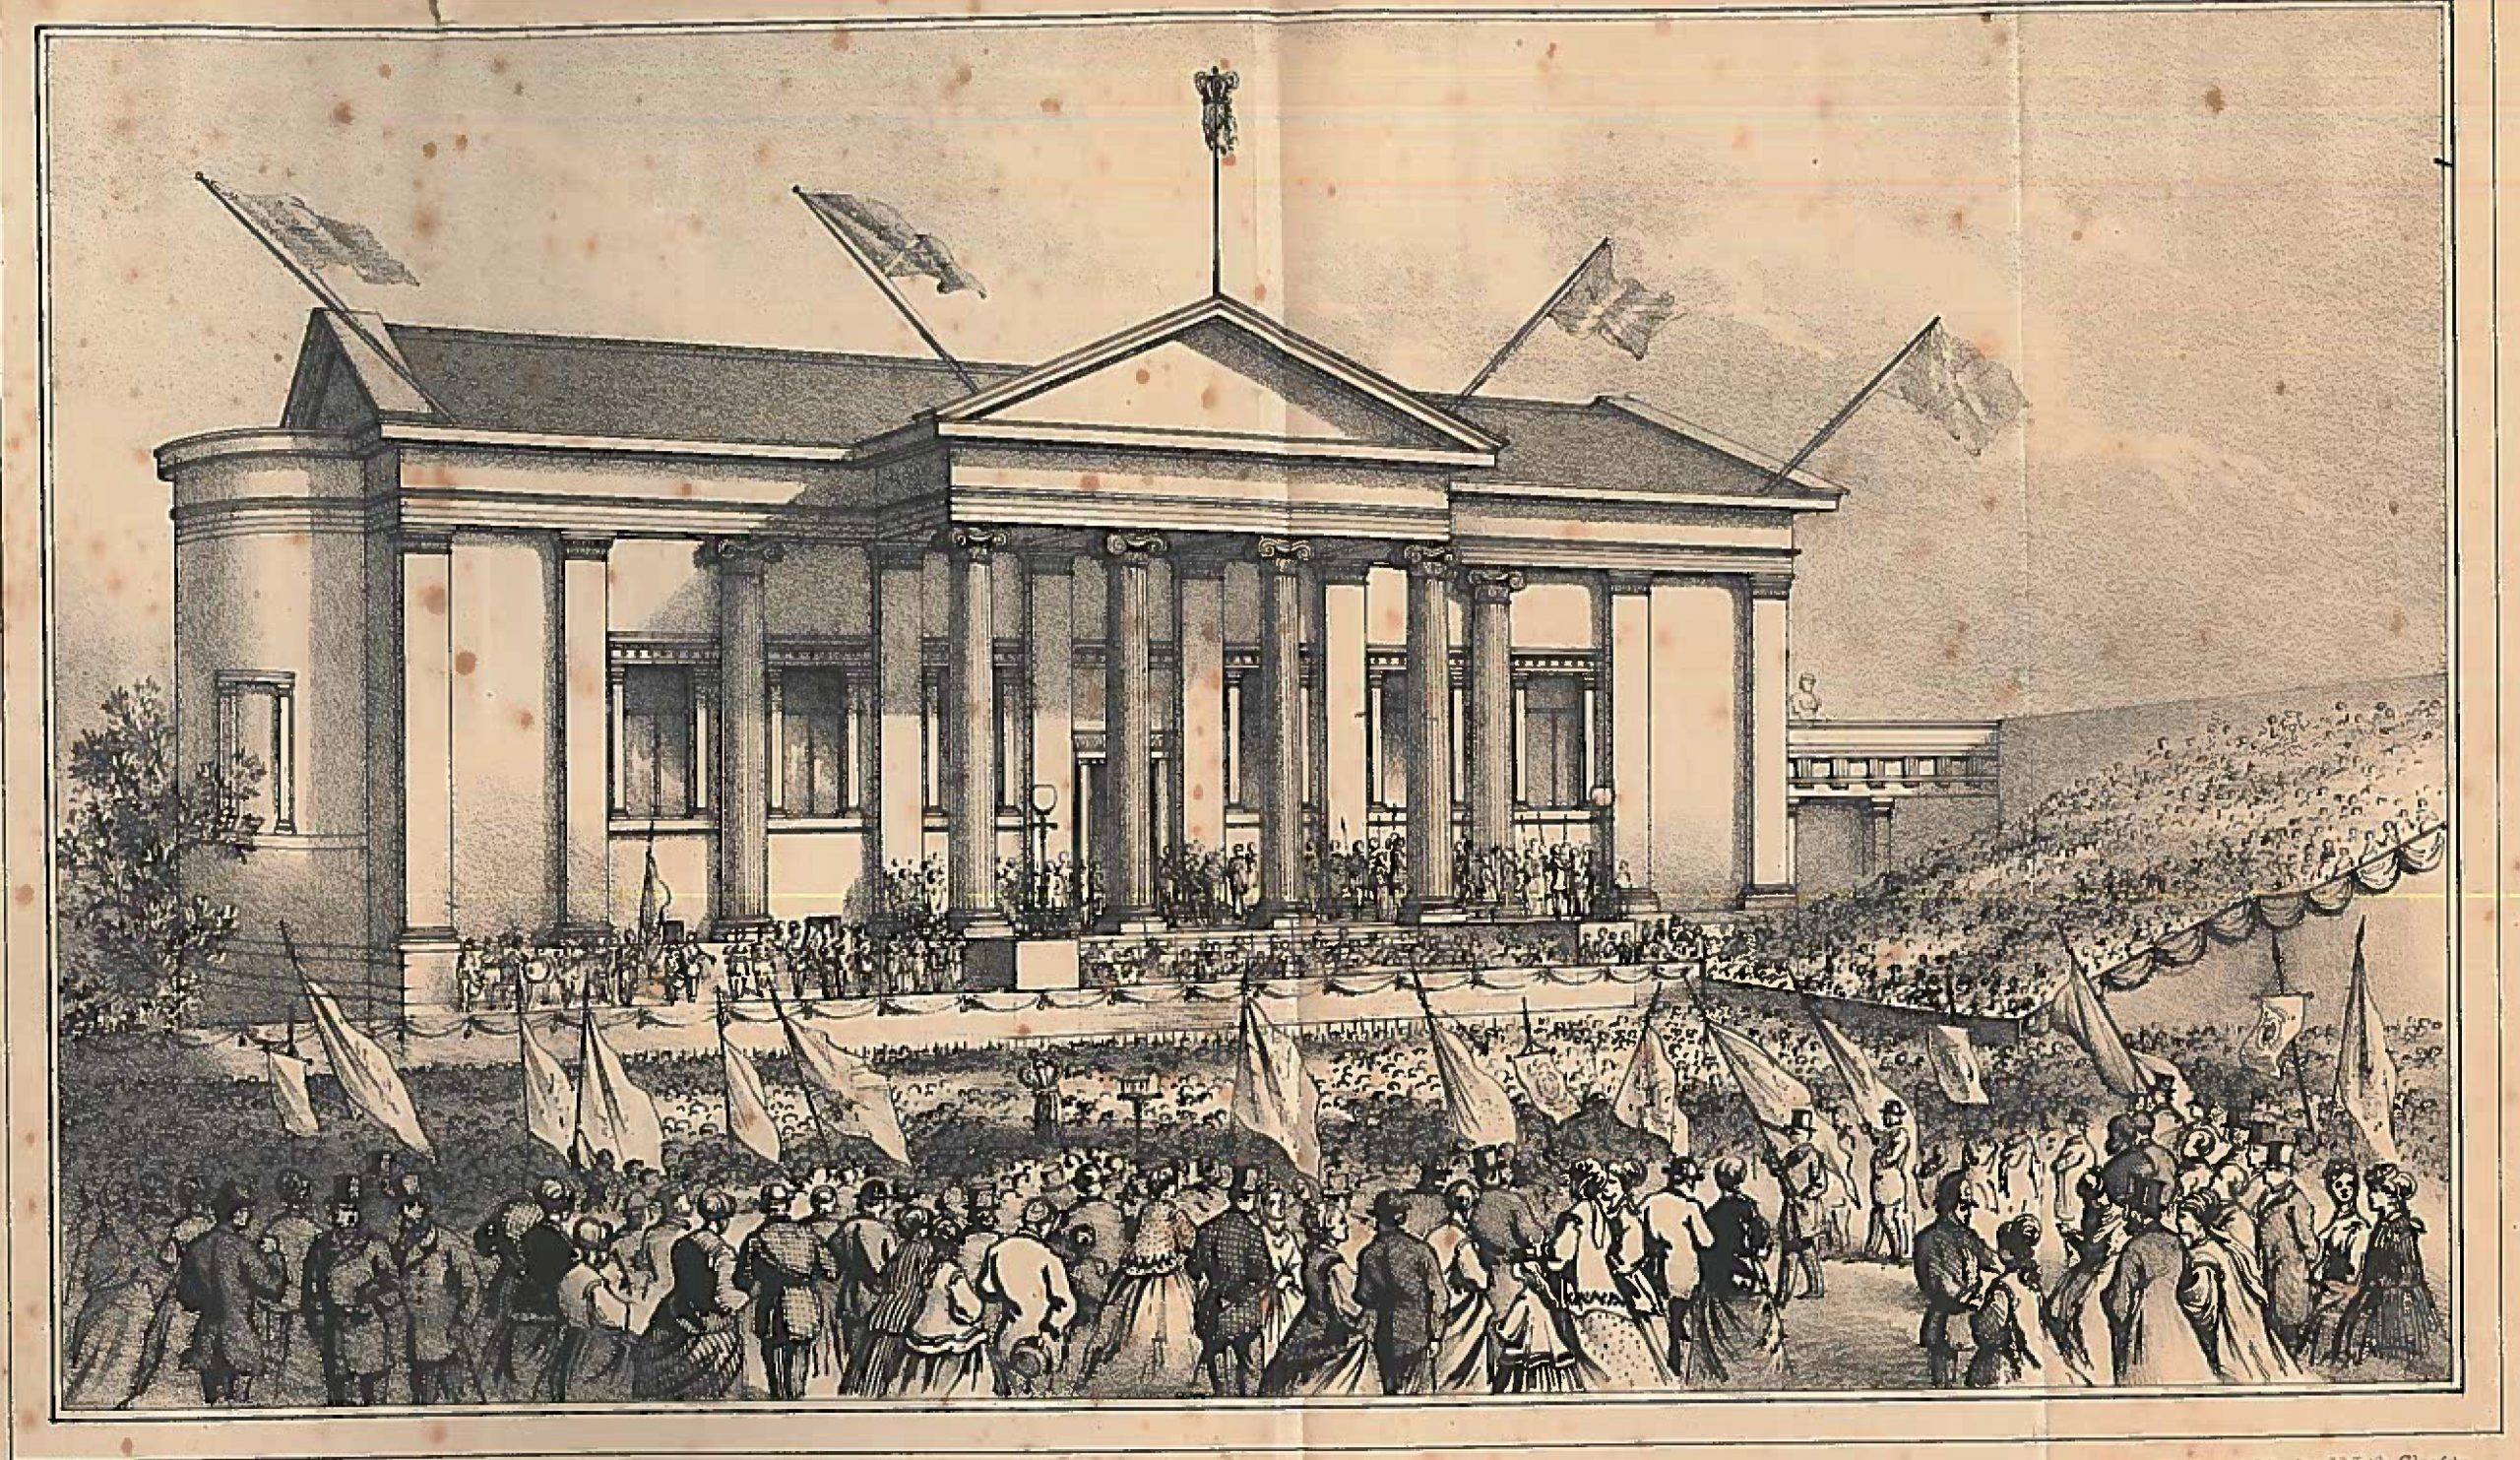 Etching of Paisley Museum opening ceremony 1871 showing a band and a crowd waving flags.